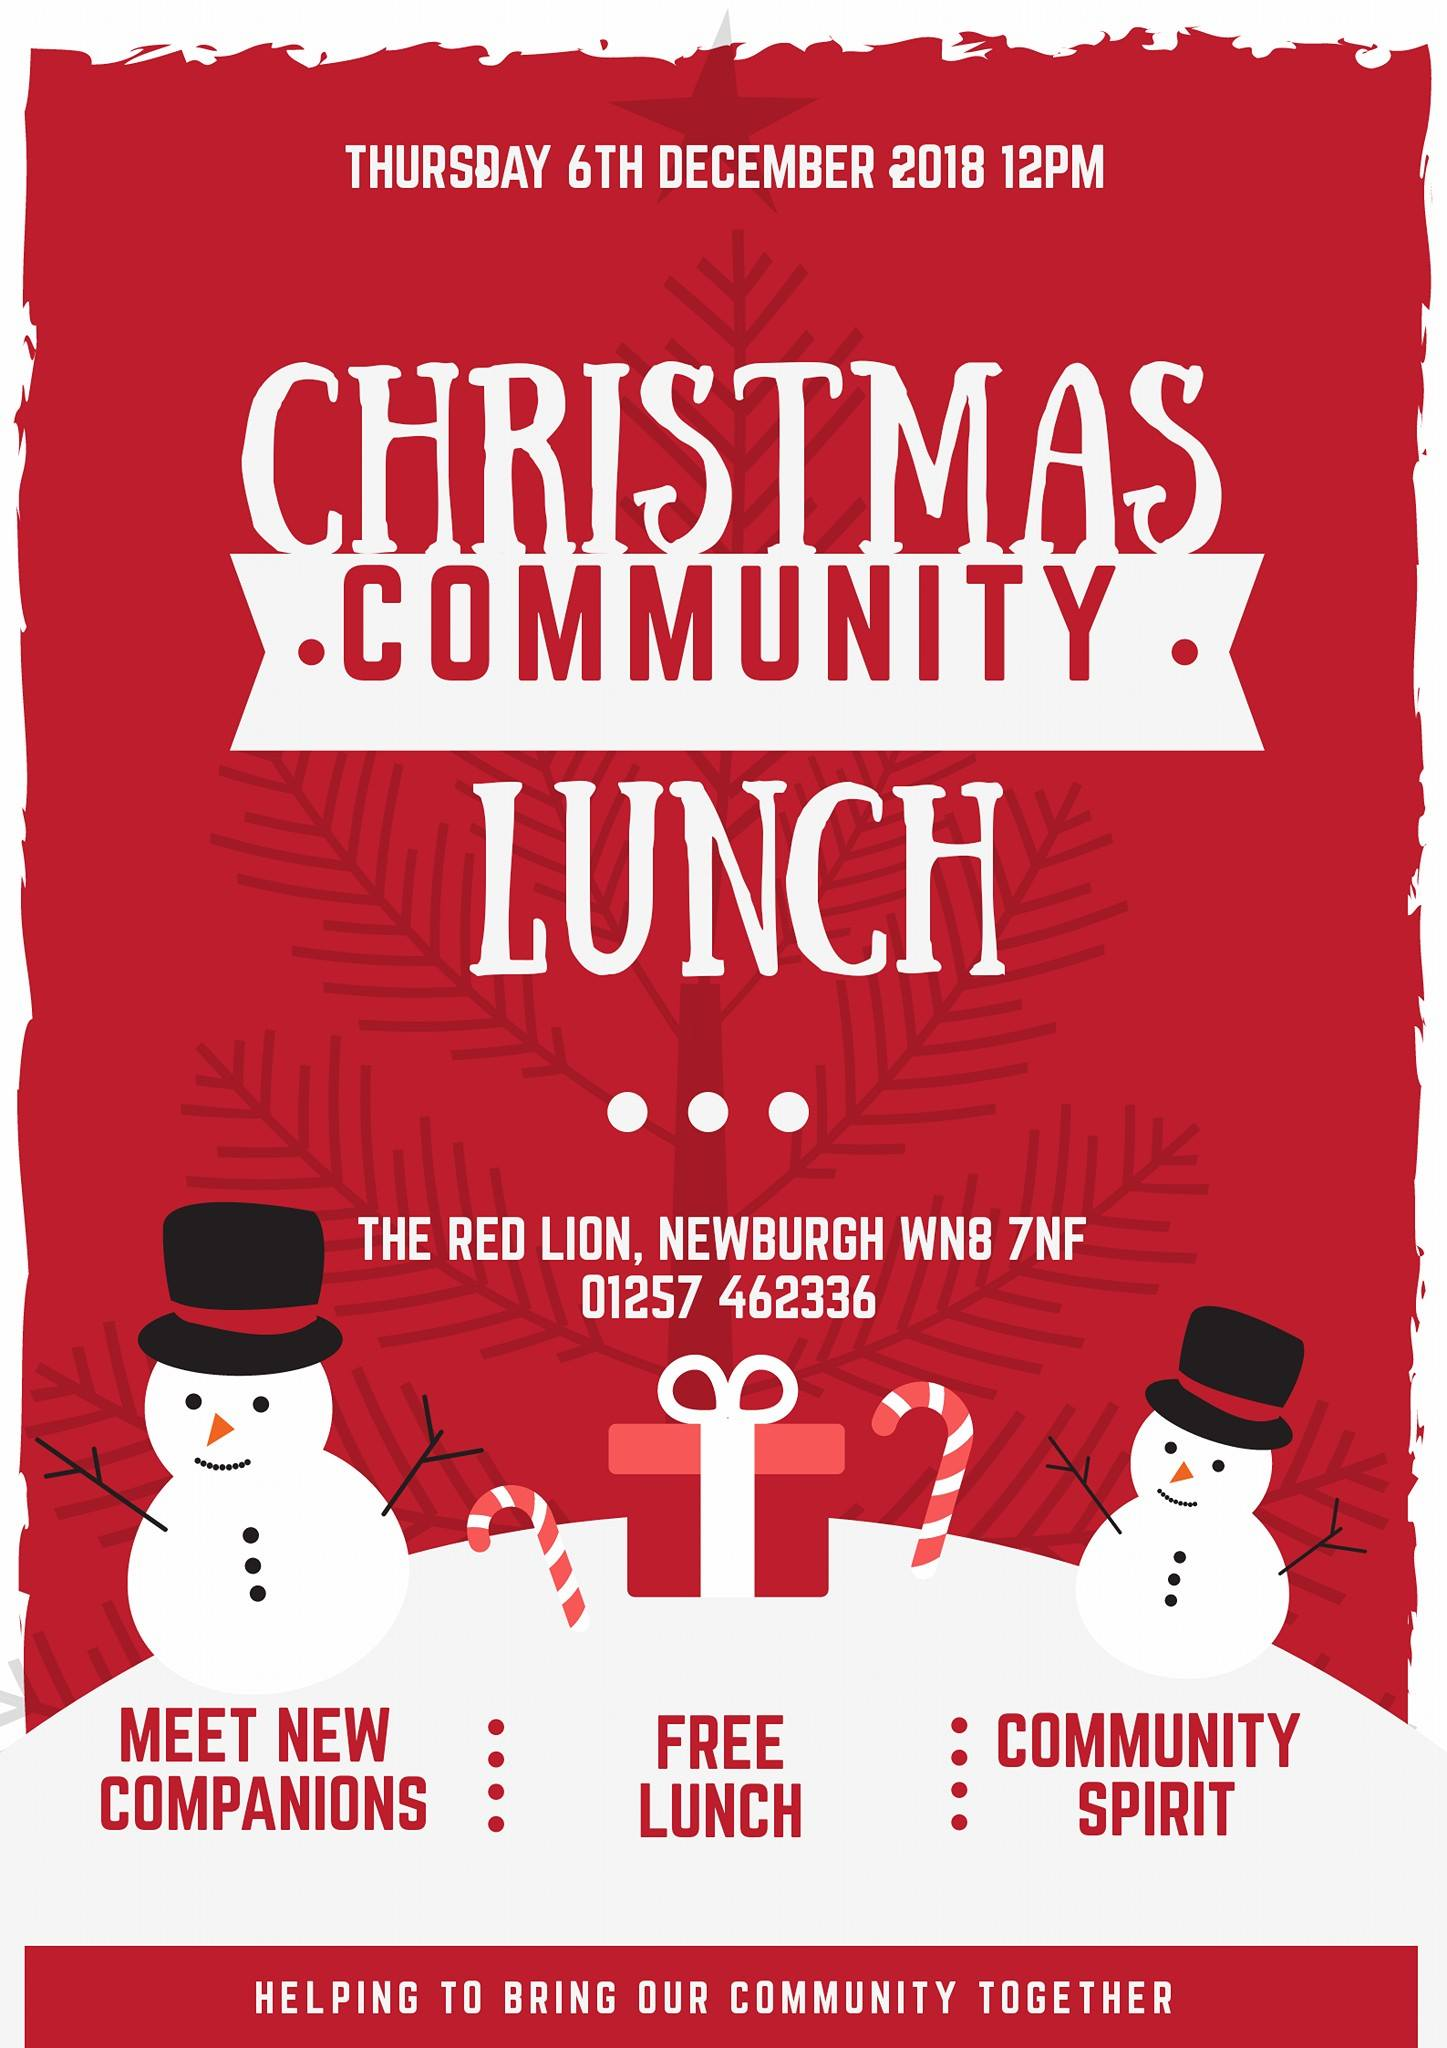 , Red Lion Hotel, Newburgh, Christmas Community Lunch, Skem News - The Top Source for Skelmersdale News